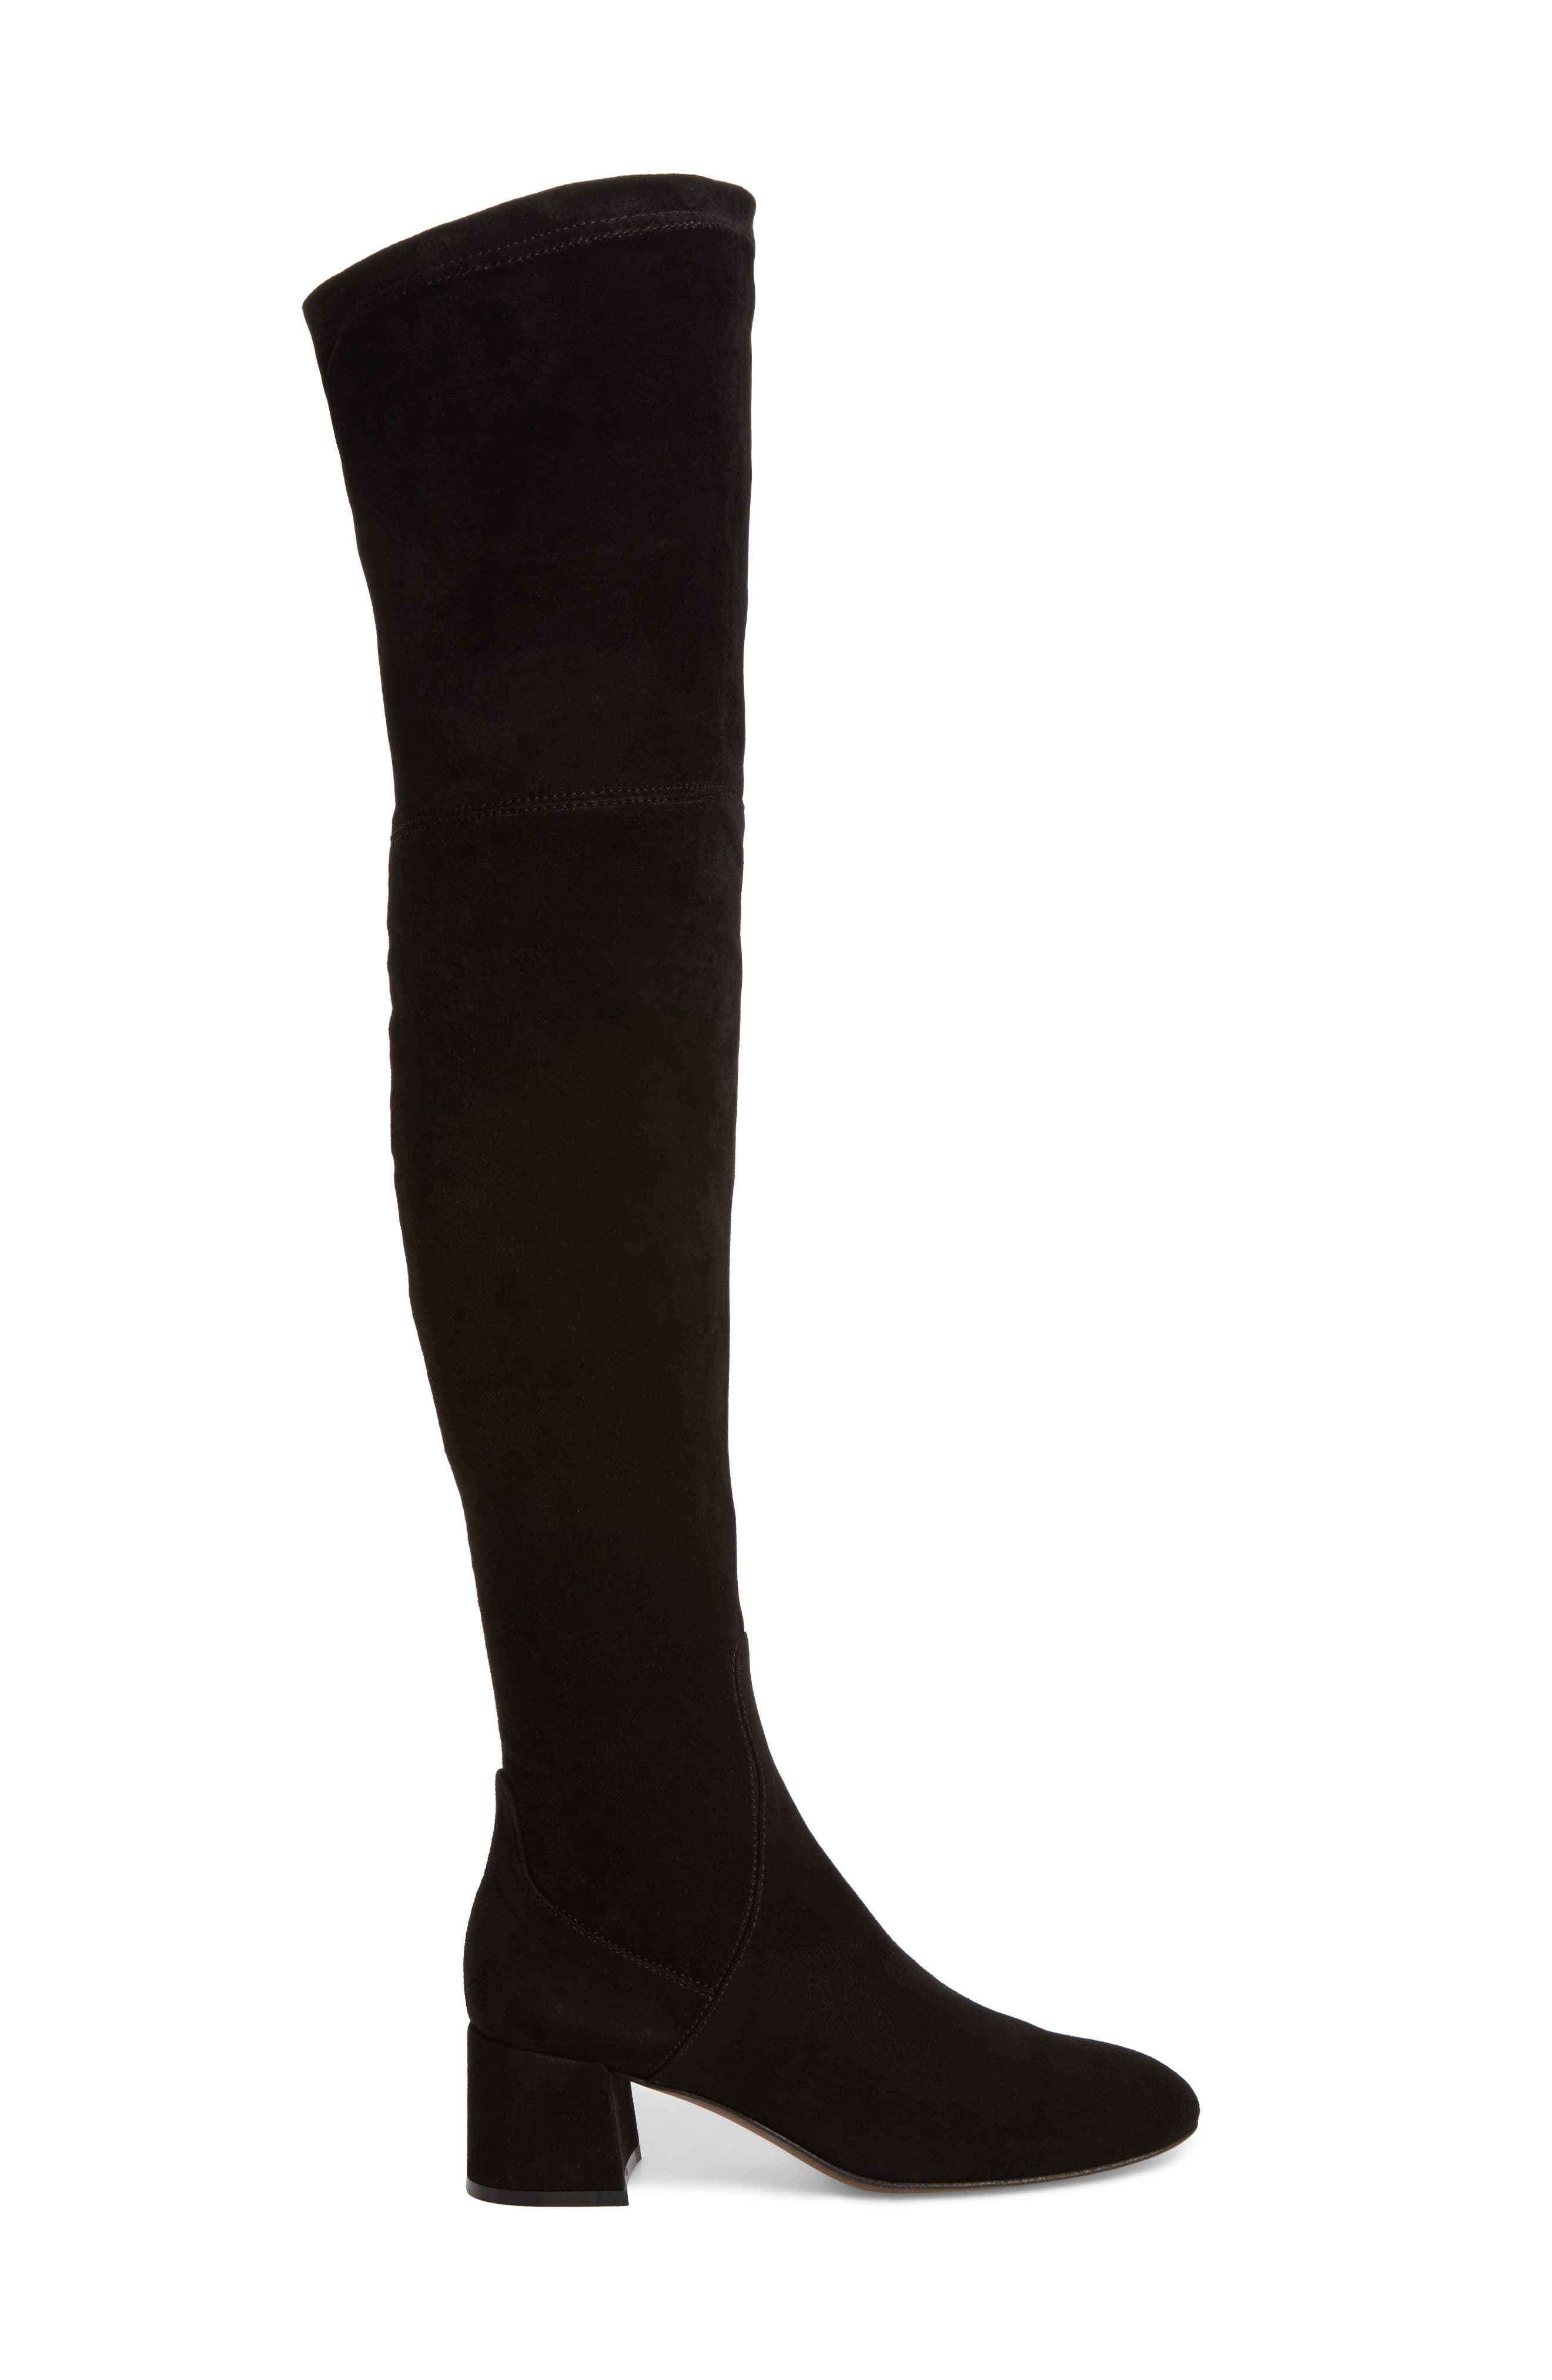 Over the Knee Boot,                             Alternate thumbnail 3, color,                             002